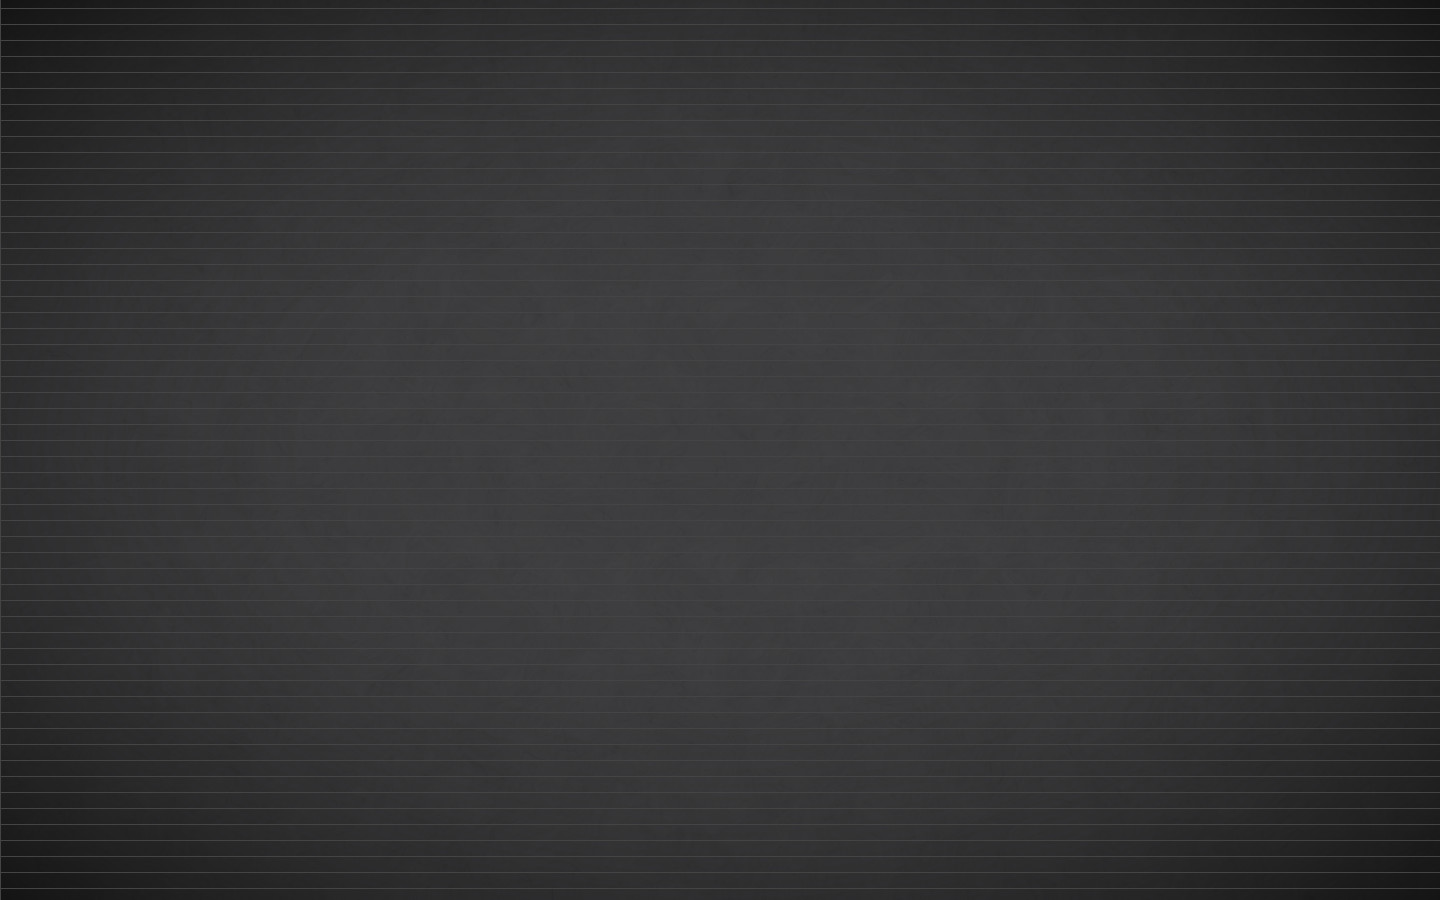 free dark website background